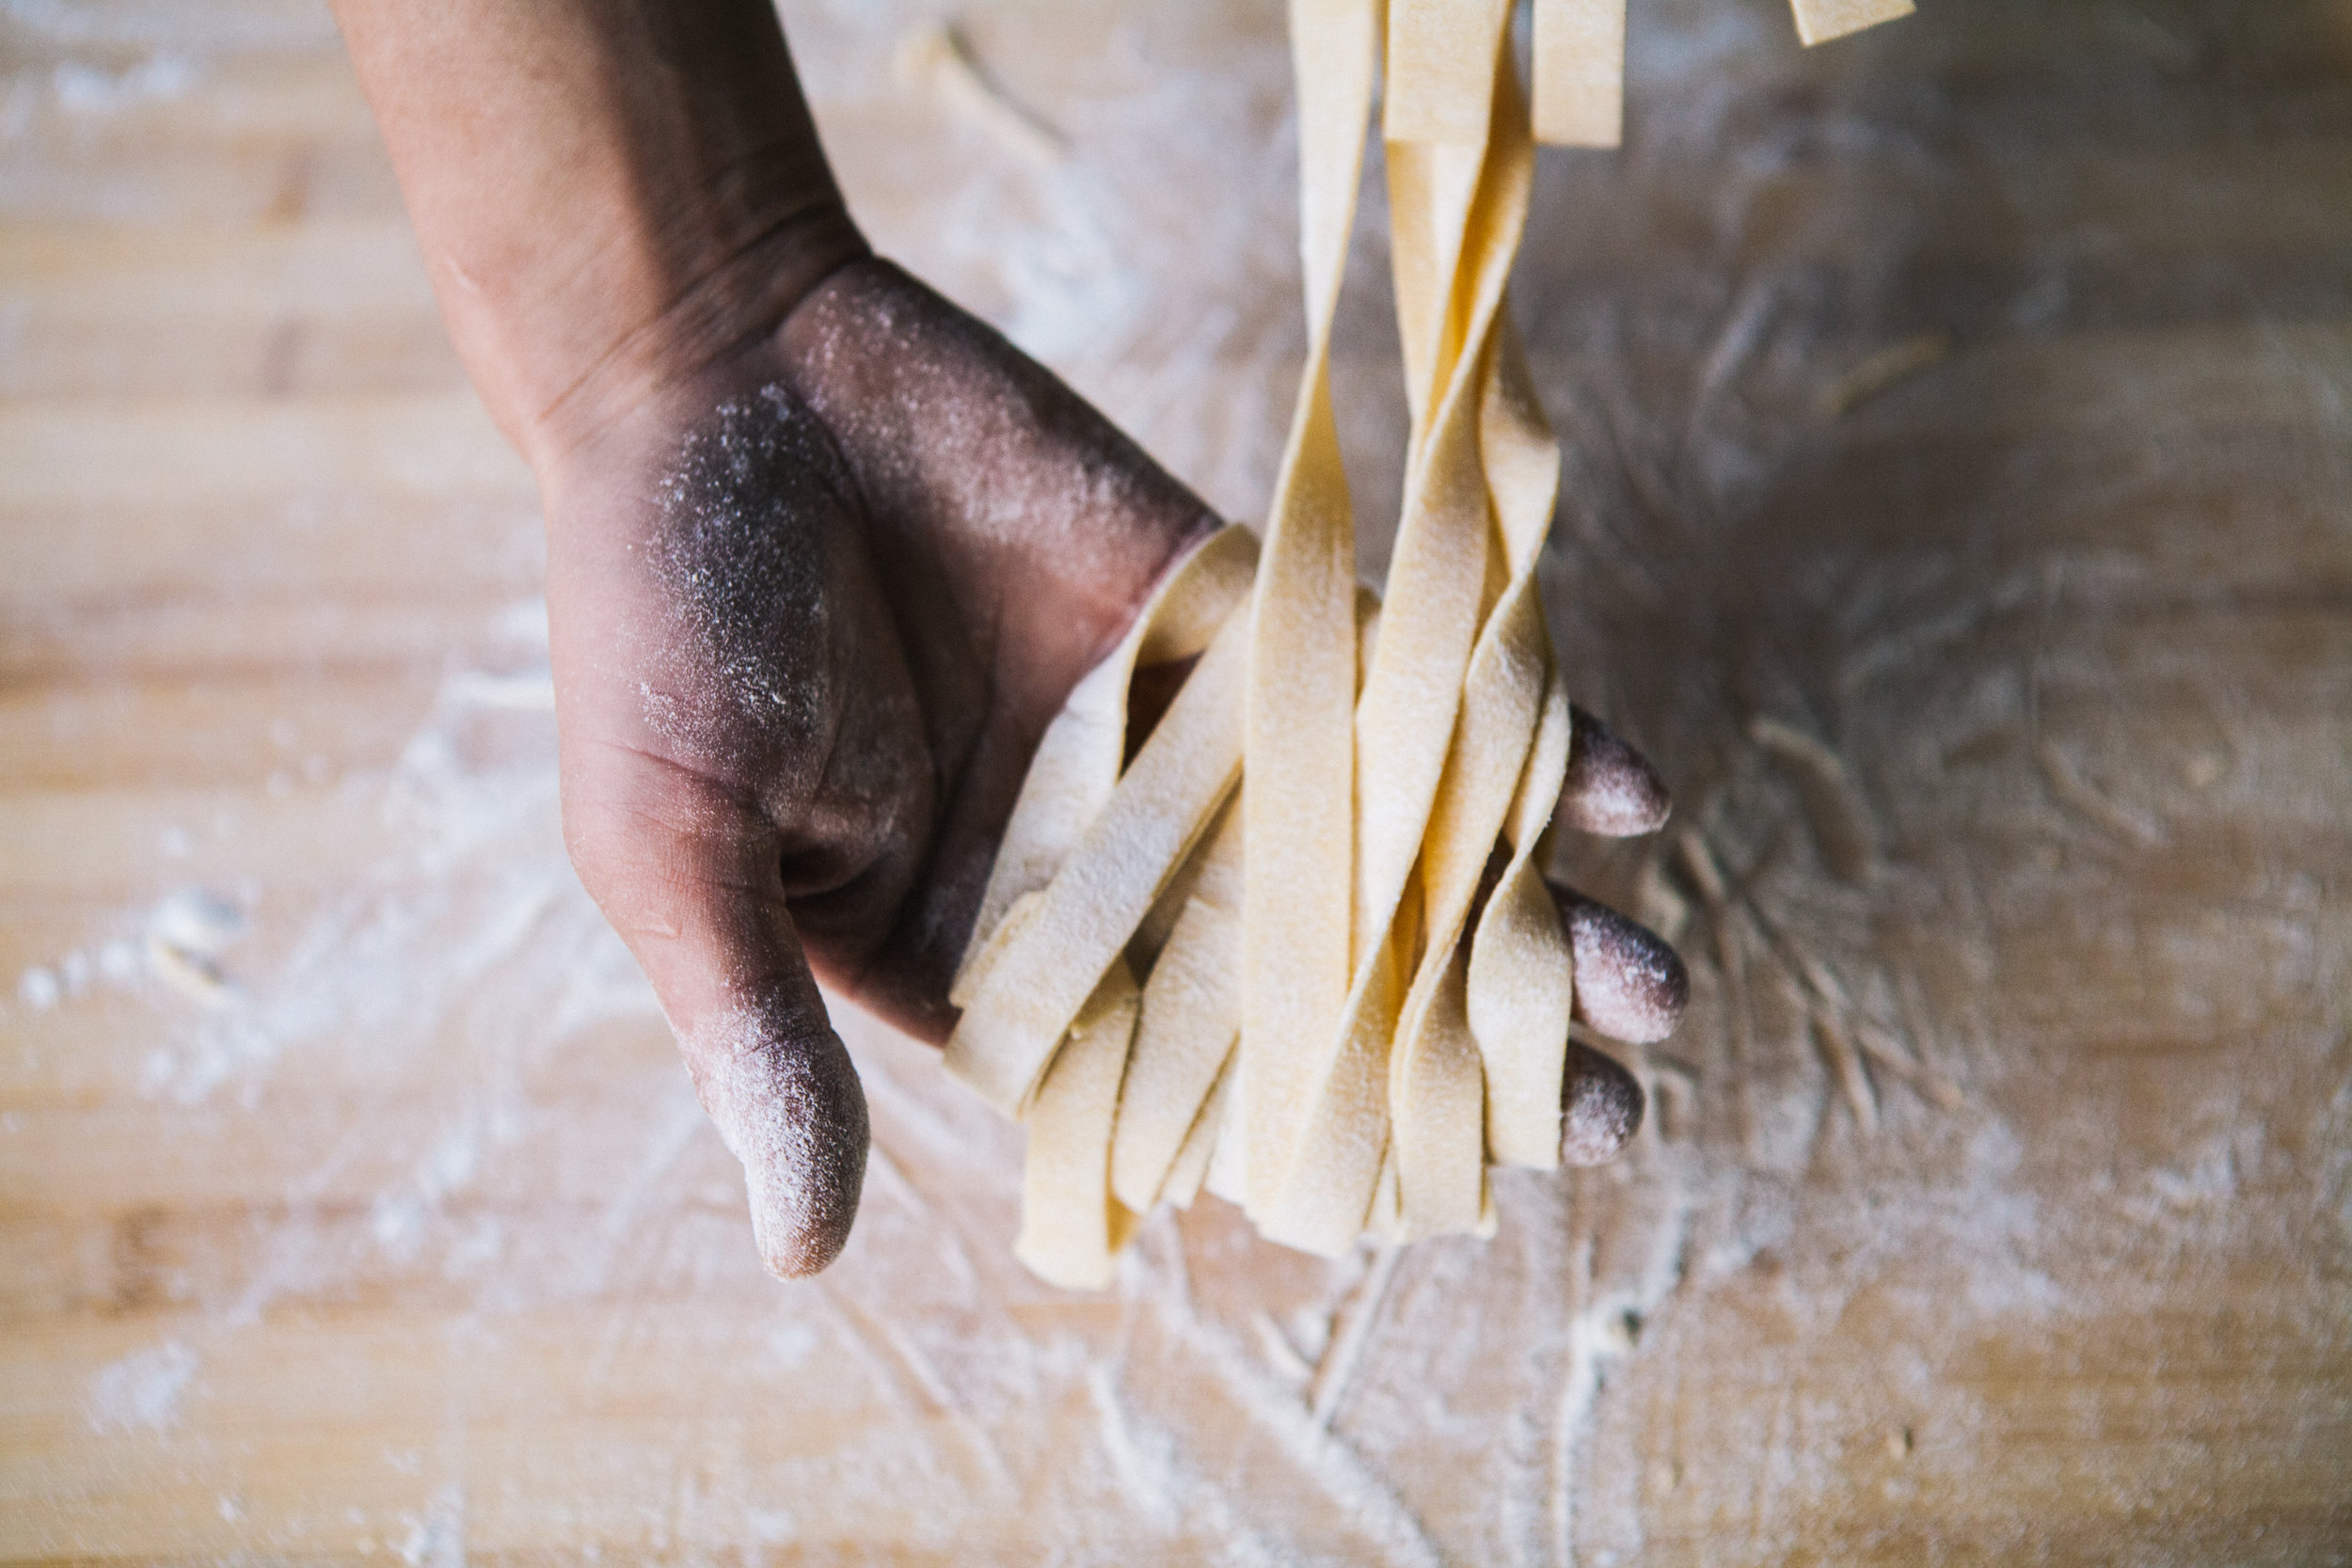 001_Fresh Pasta_Main picture at the top of the section.jpg